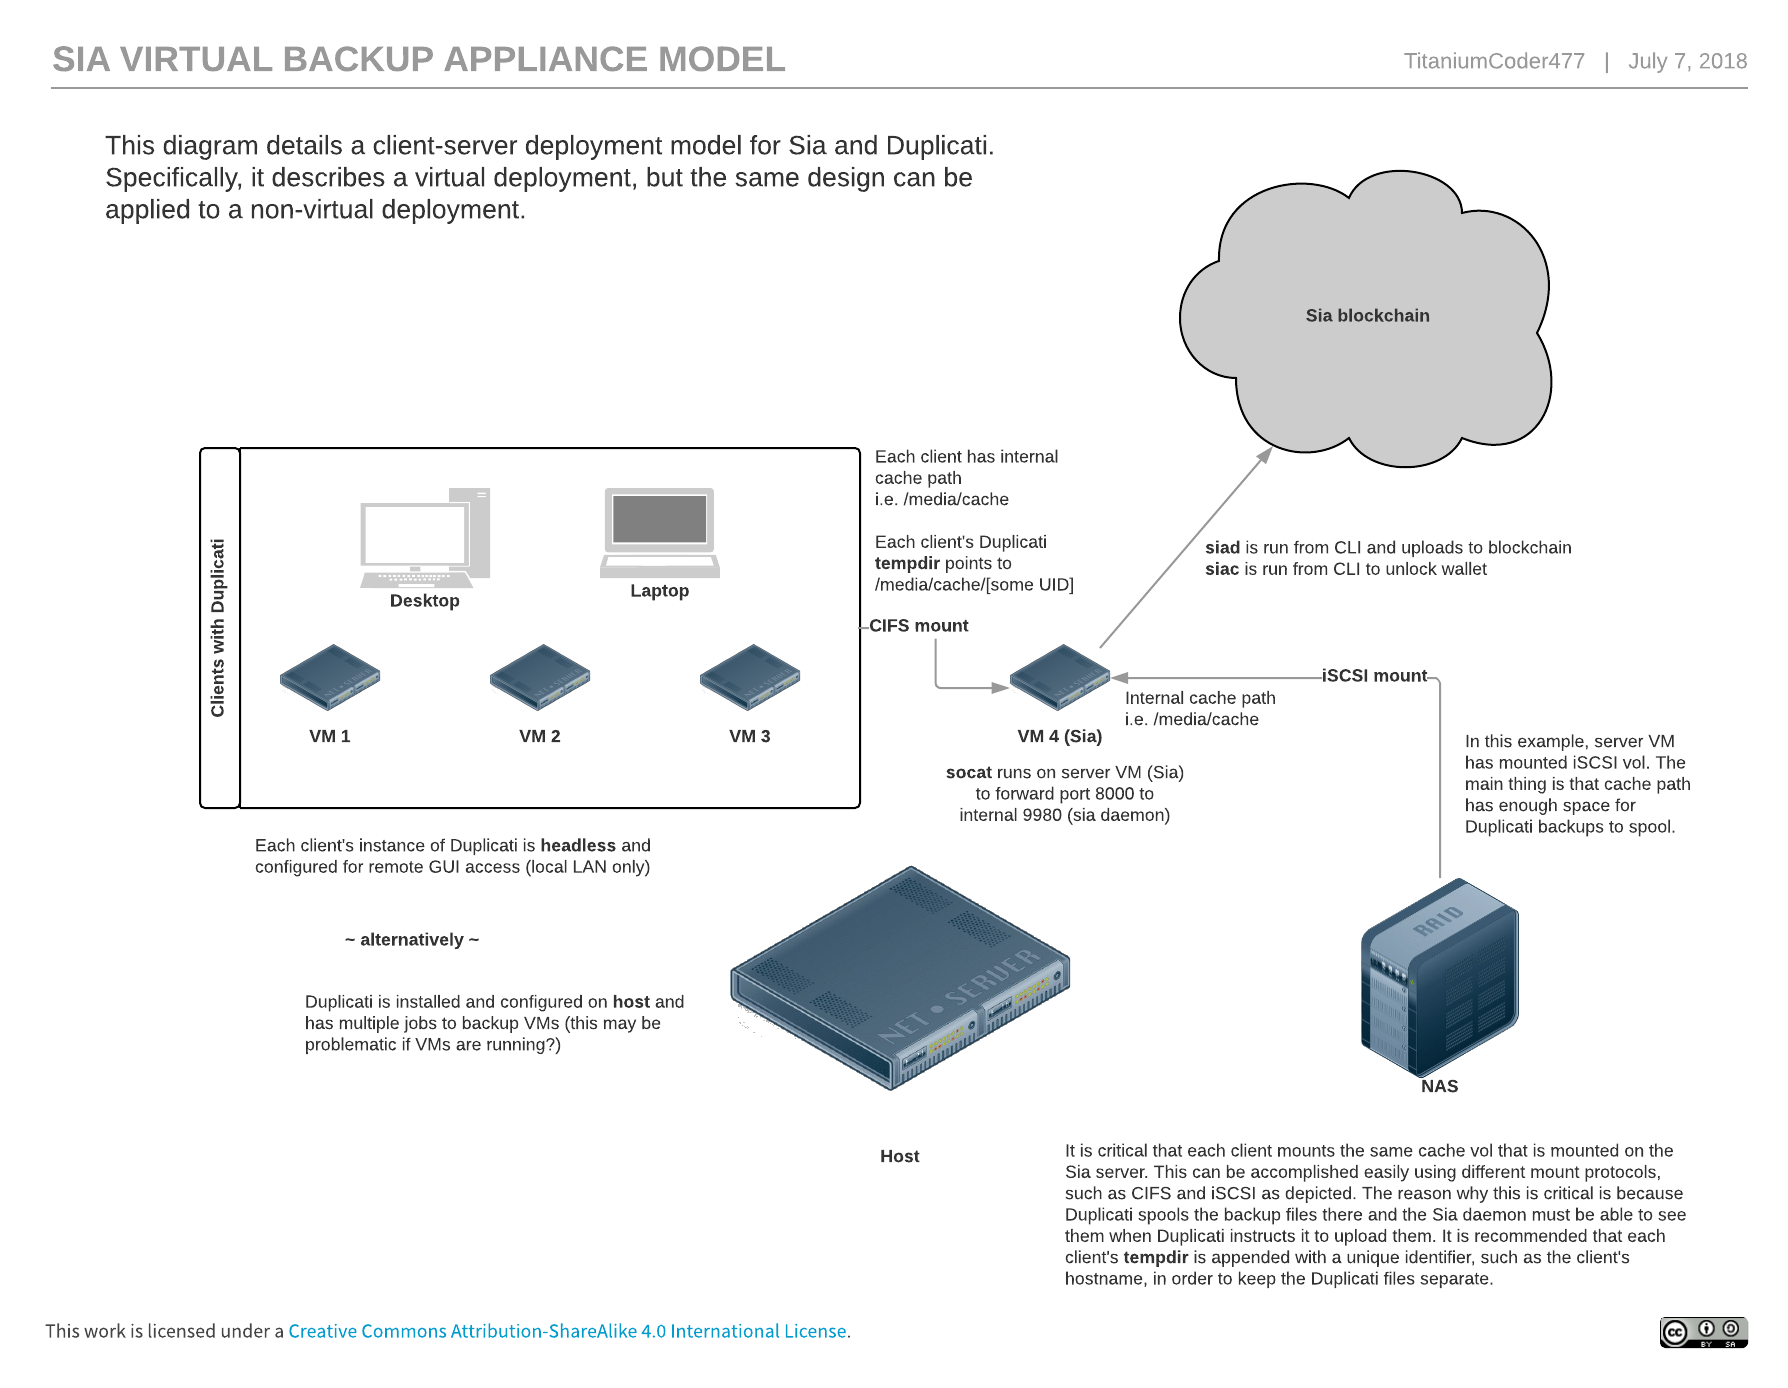 Duplicati backup through Sia appliance VM - Duplicati